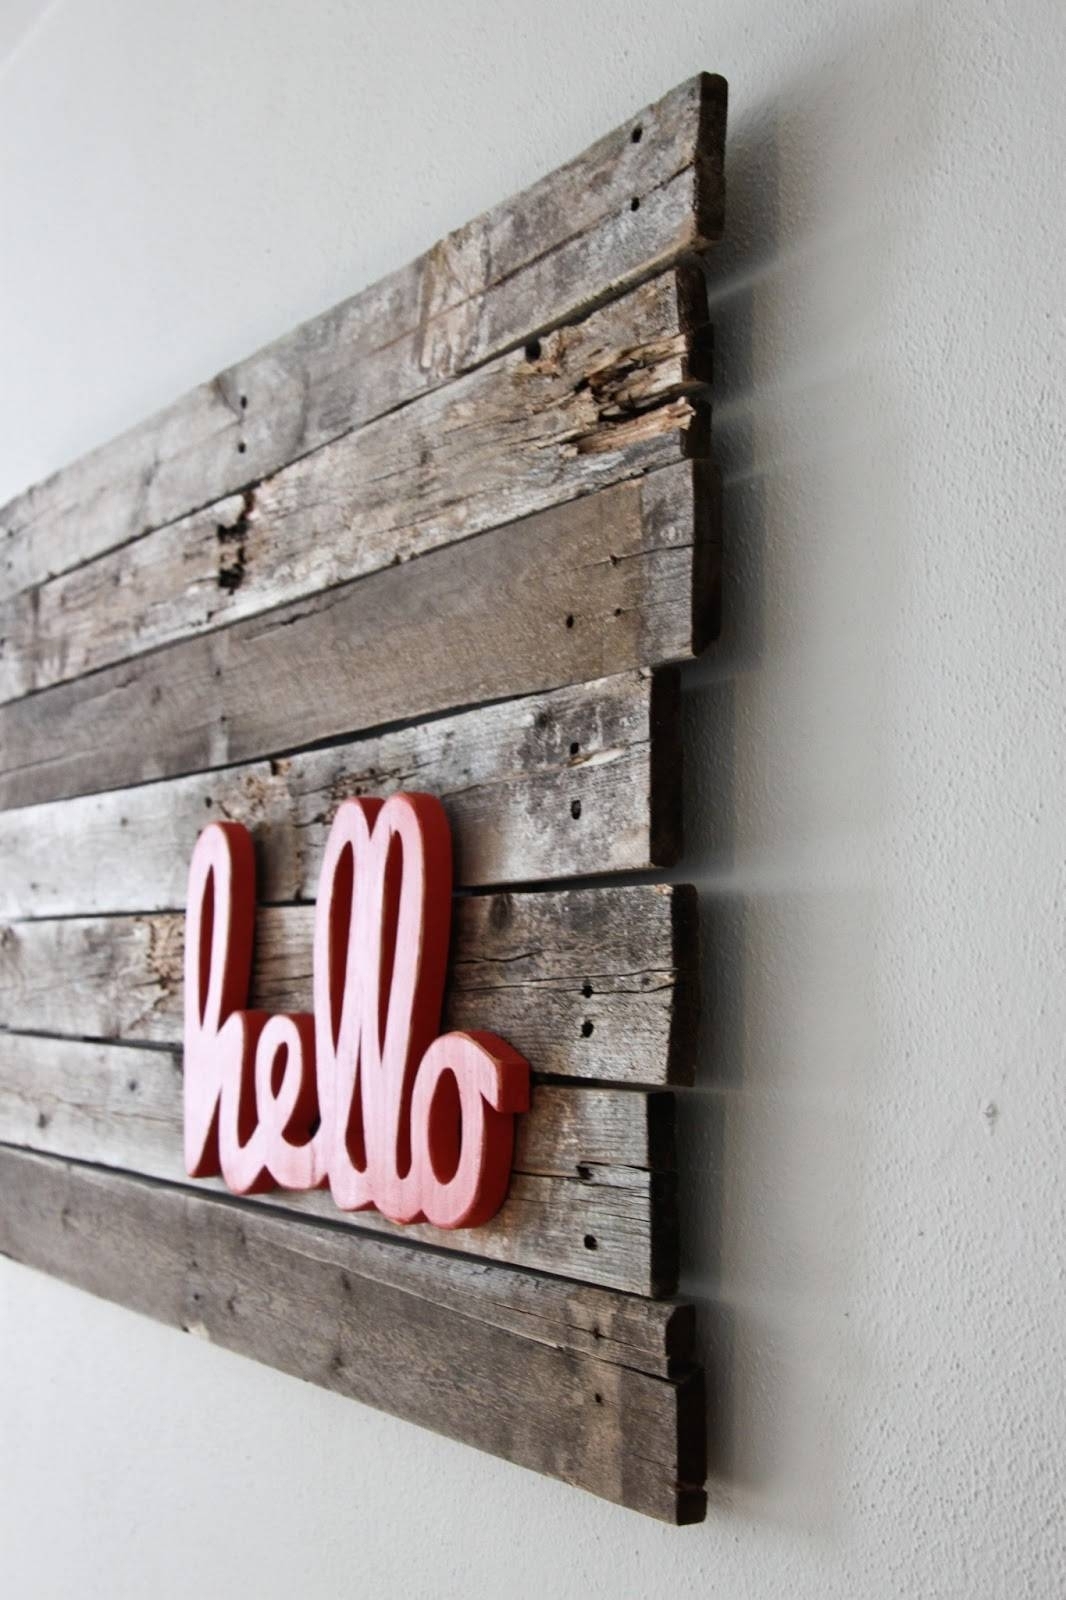 Wall Art Words Wooden Saw Word Like – Dma Homes | #89896 Pertaining To Most Recently Released 3D Wall Art Words (View 12 of 20)